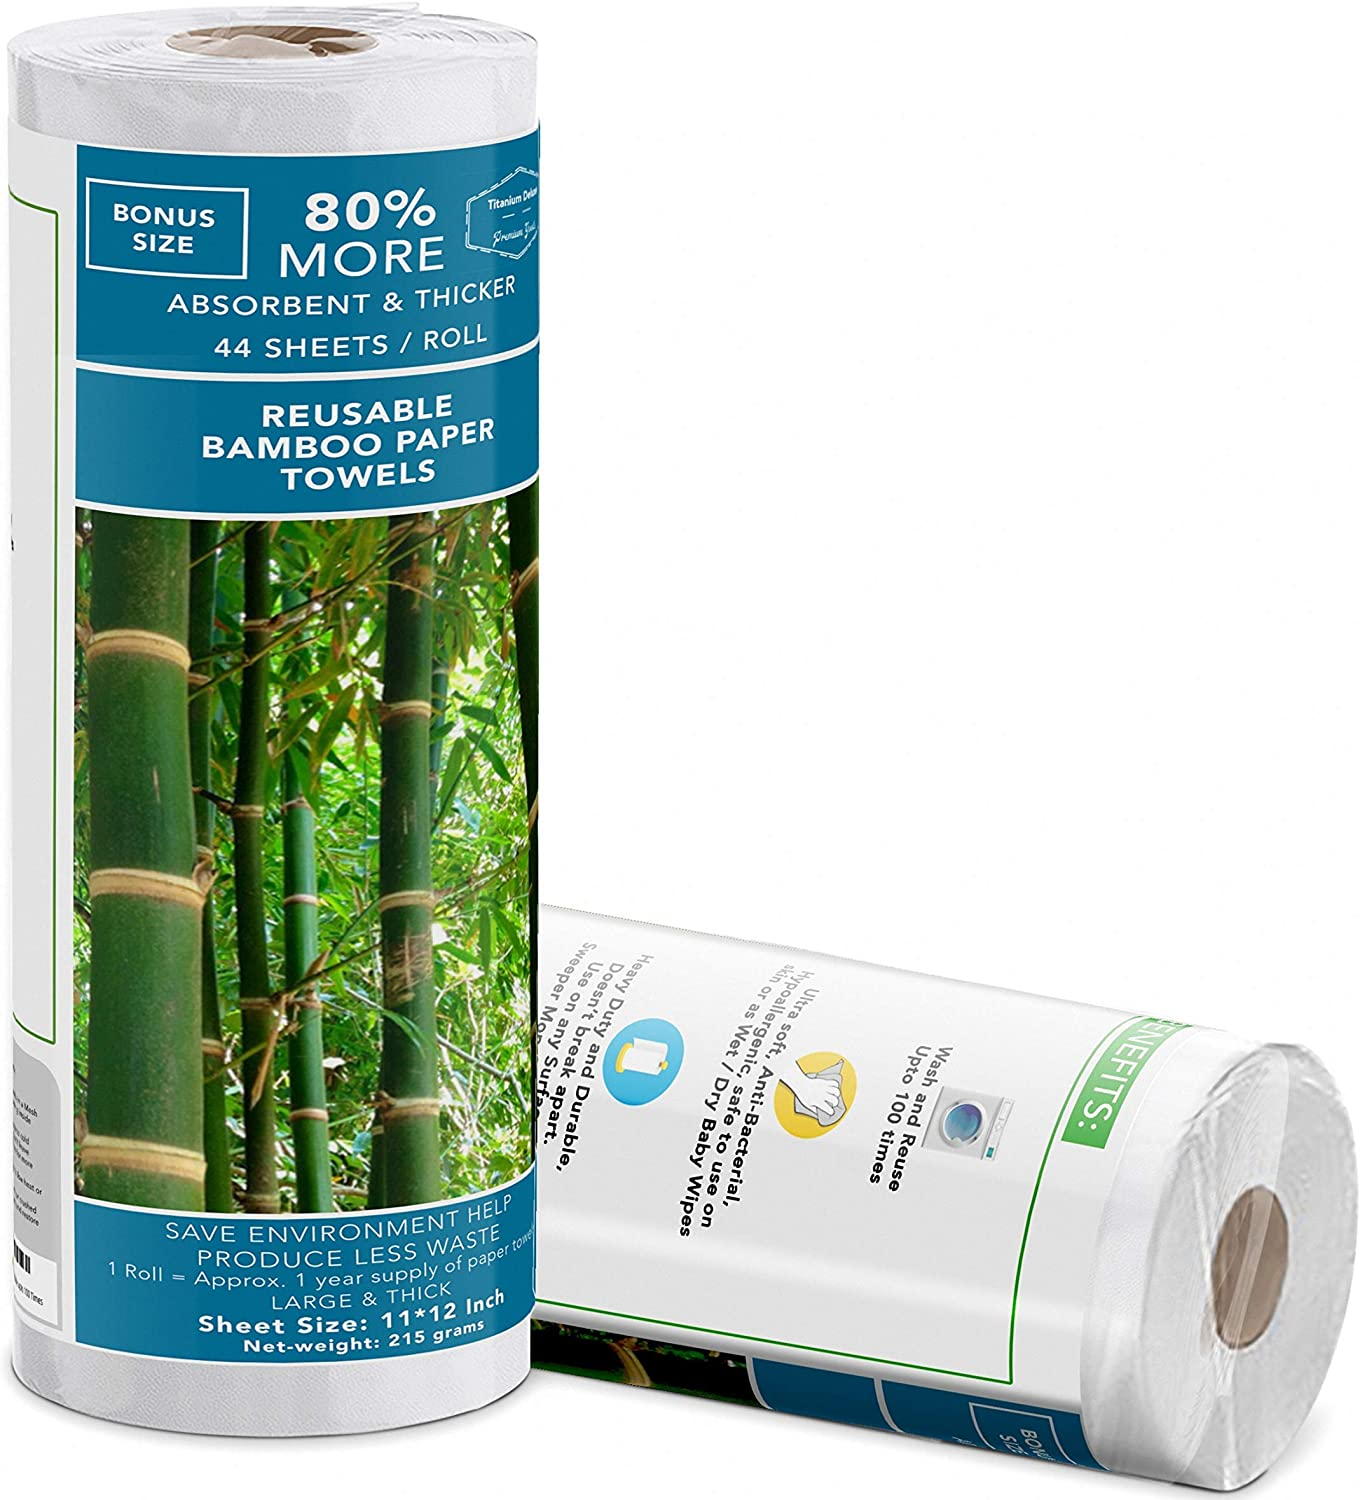 Image result for bamboo paper towels